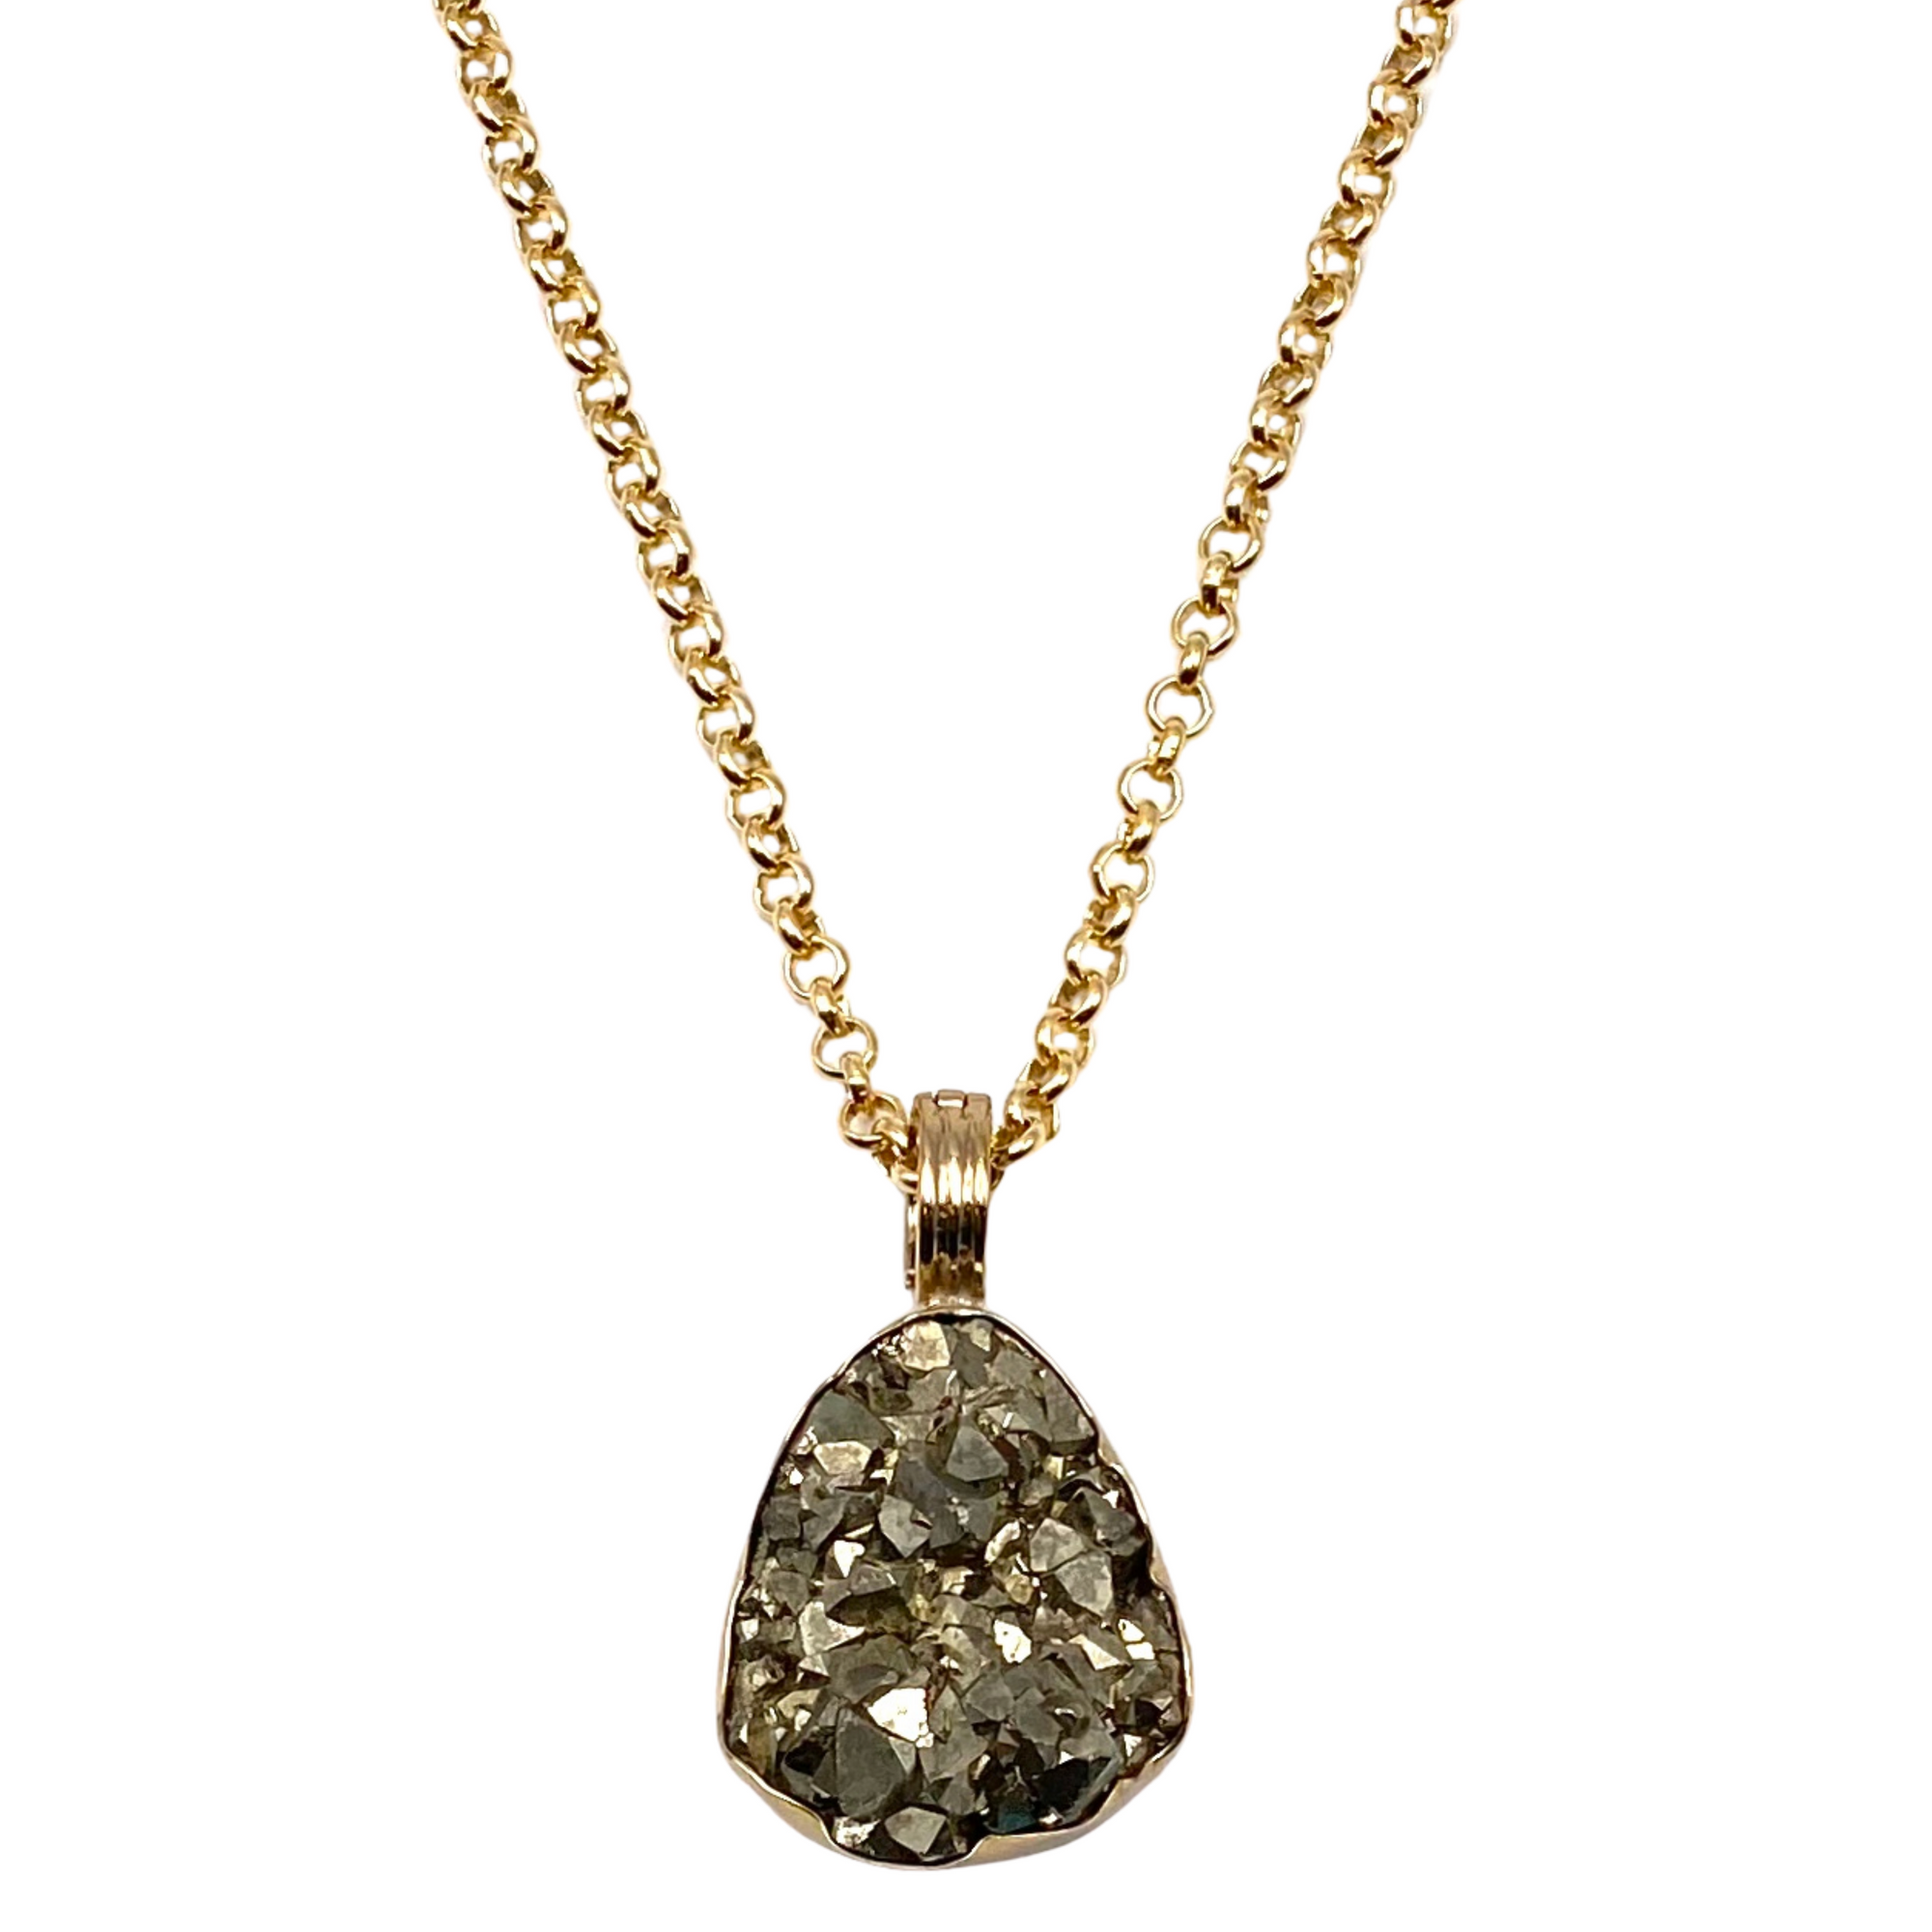 Peruvian Pyrite Pendant Necklace